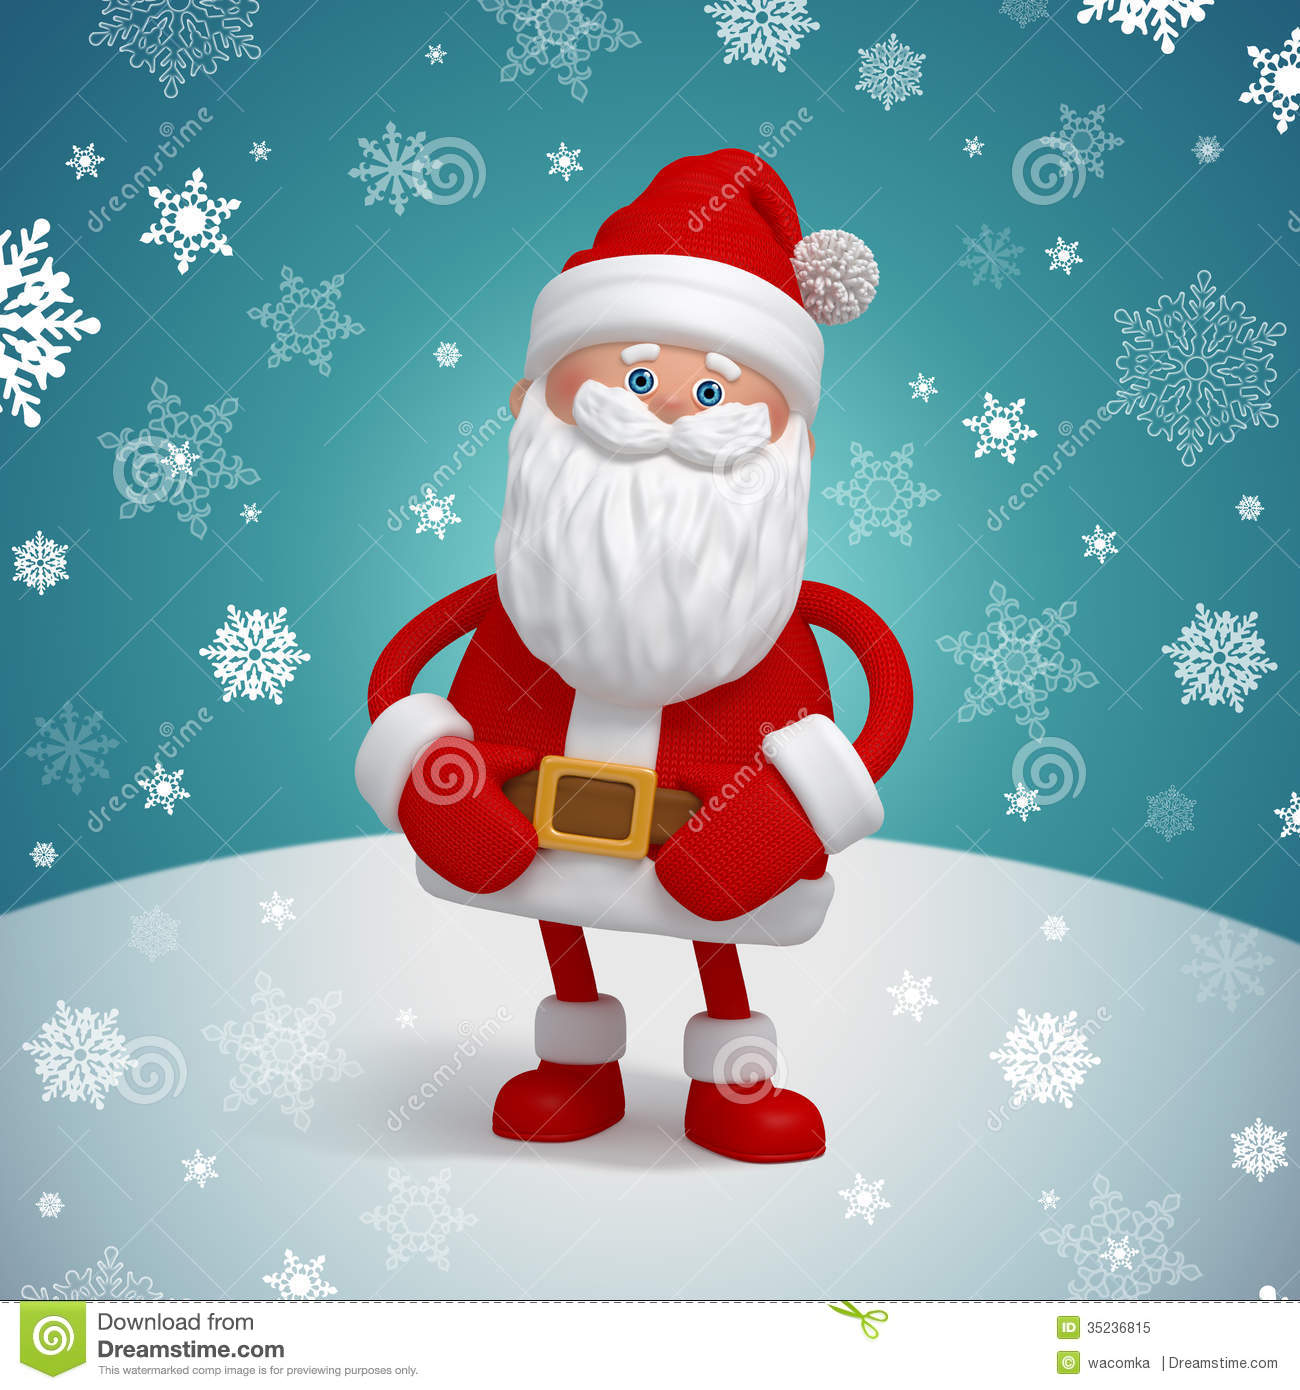 Cute 3d Santa Claus Cartoon Character Royalty Free Stock